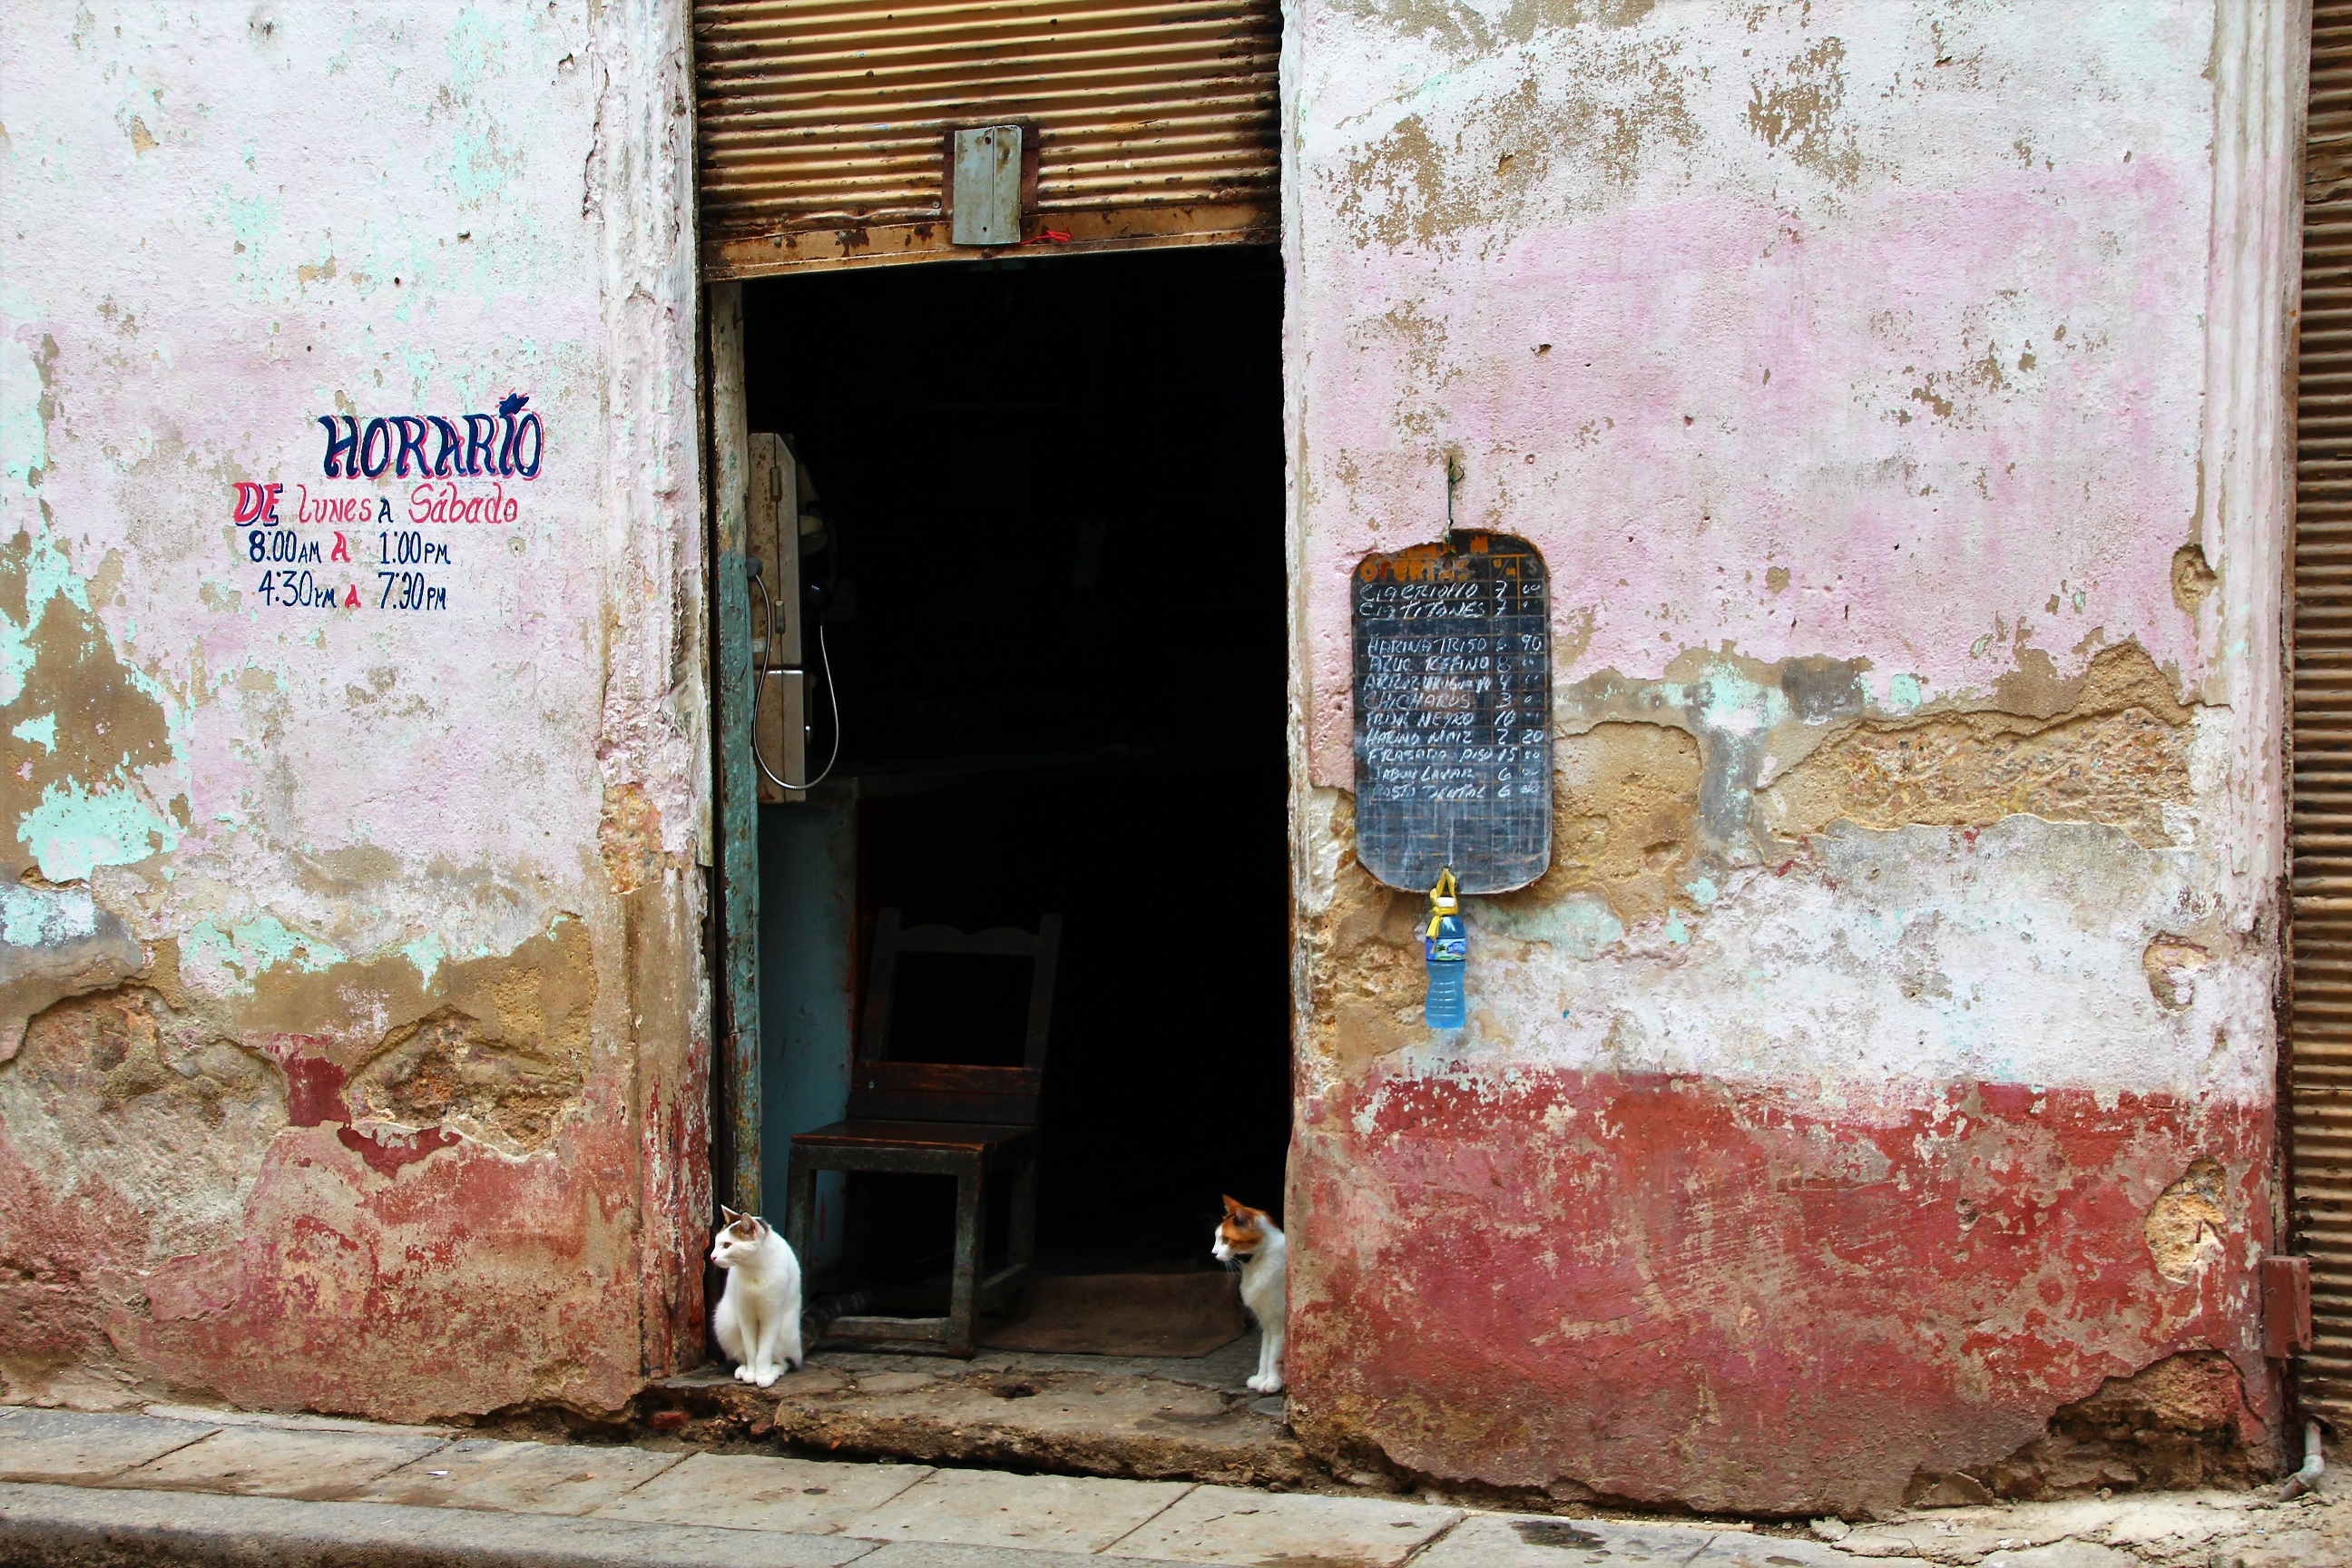 Expect many cats in Cuba - Crooked Compass